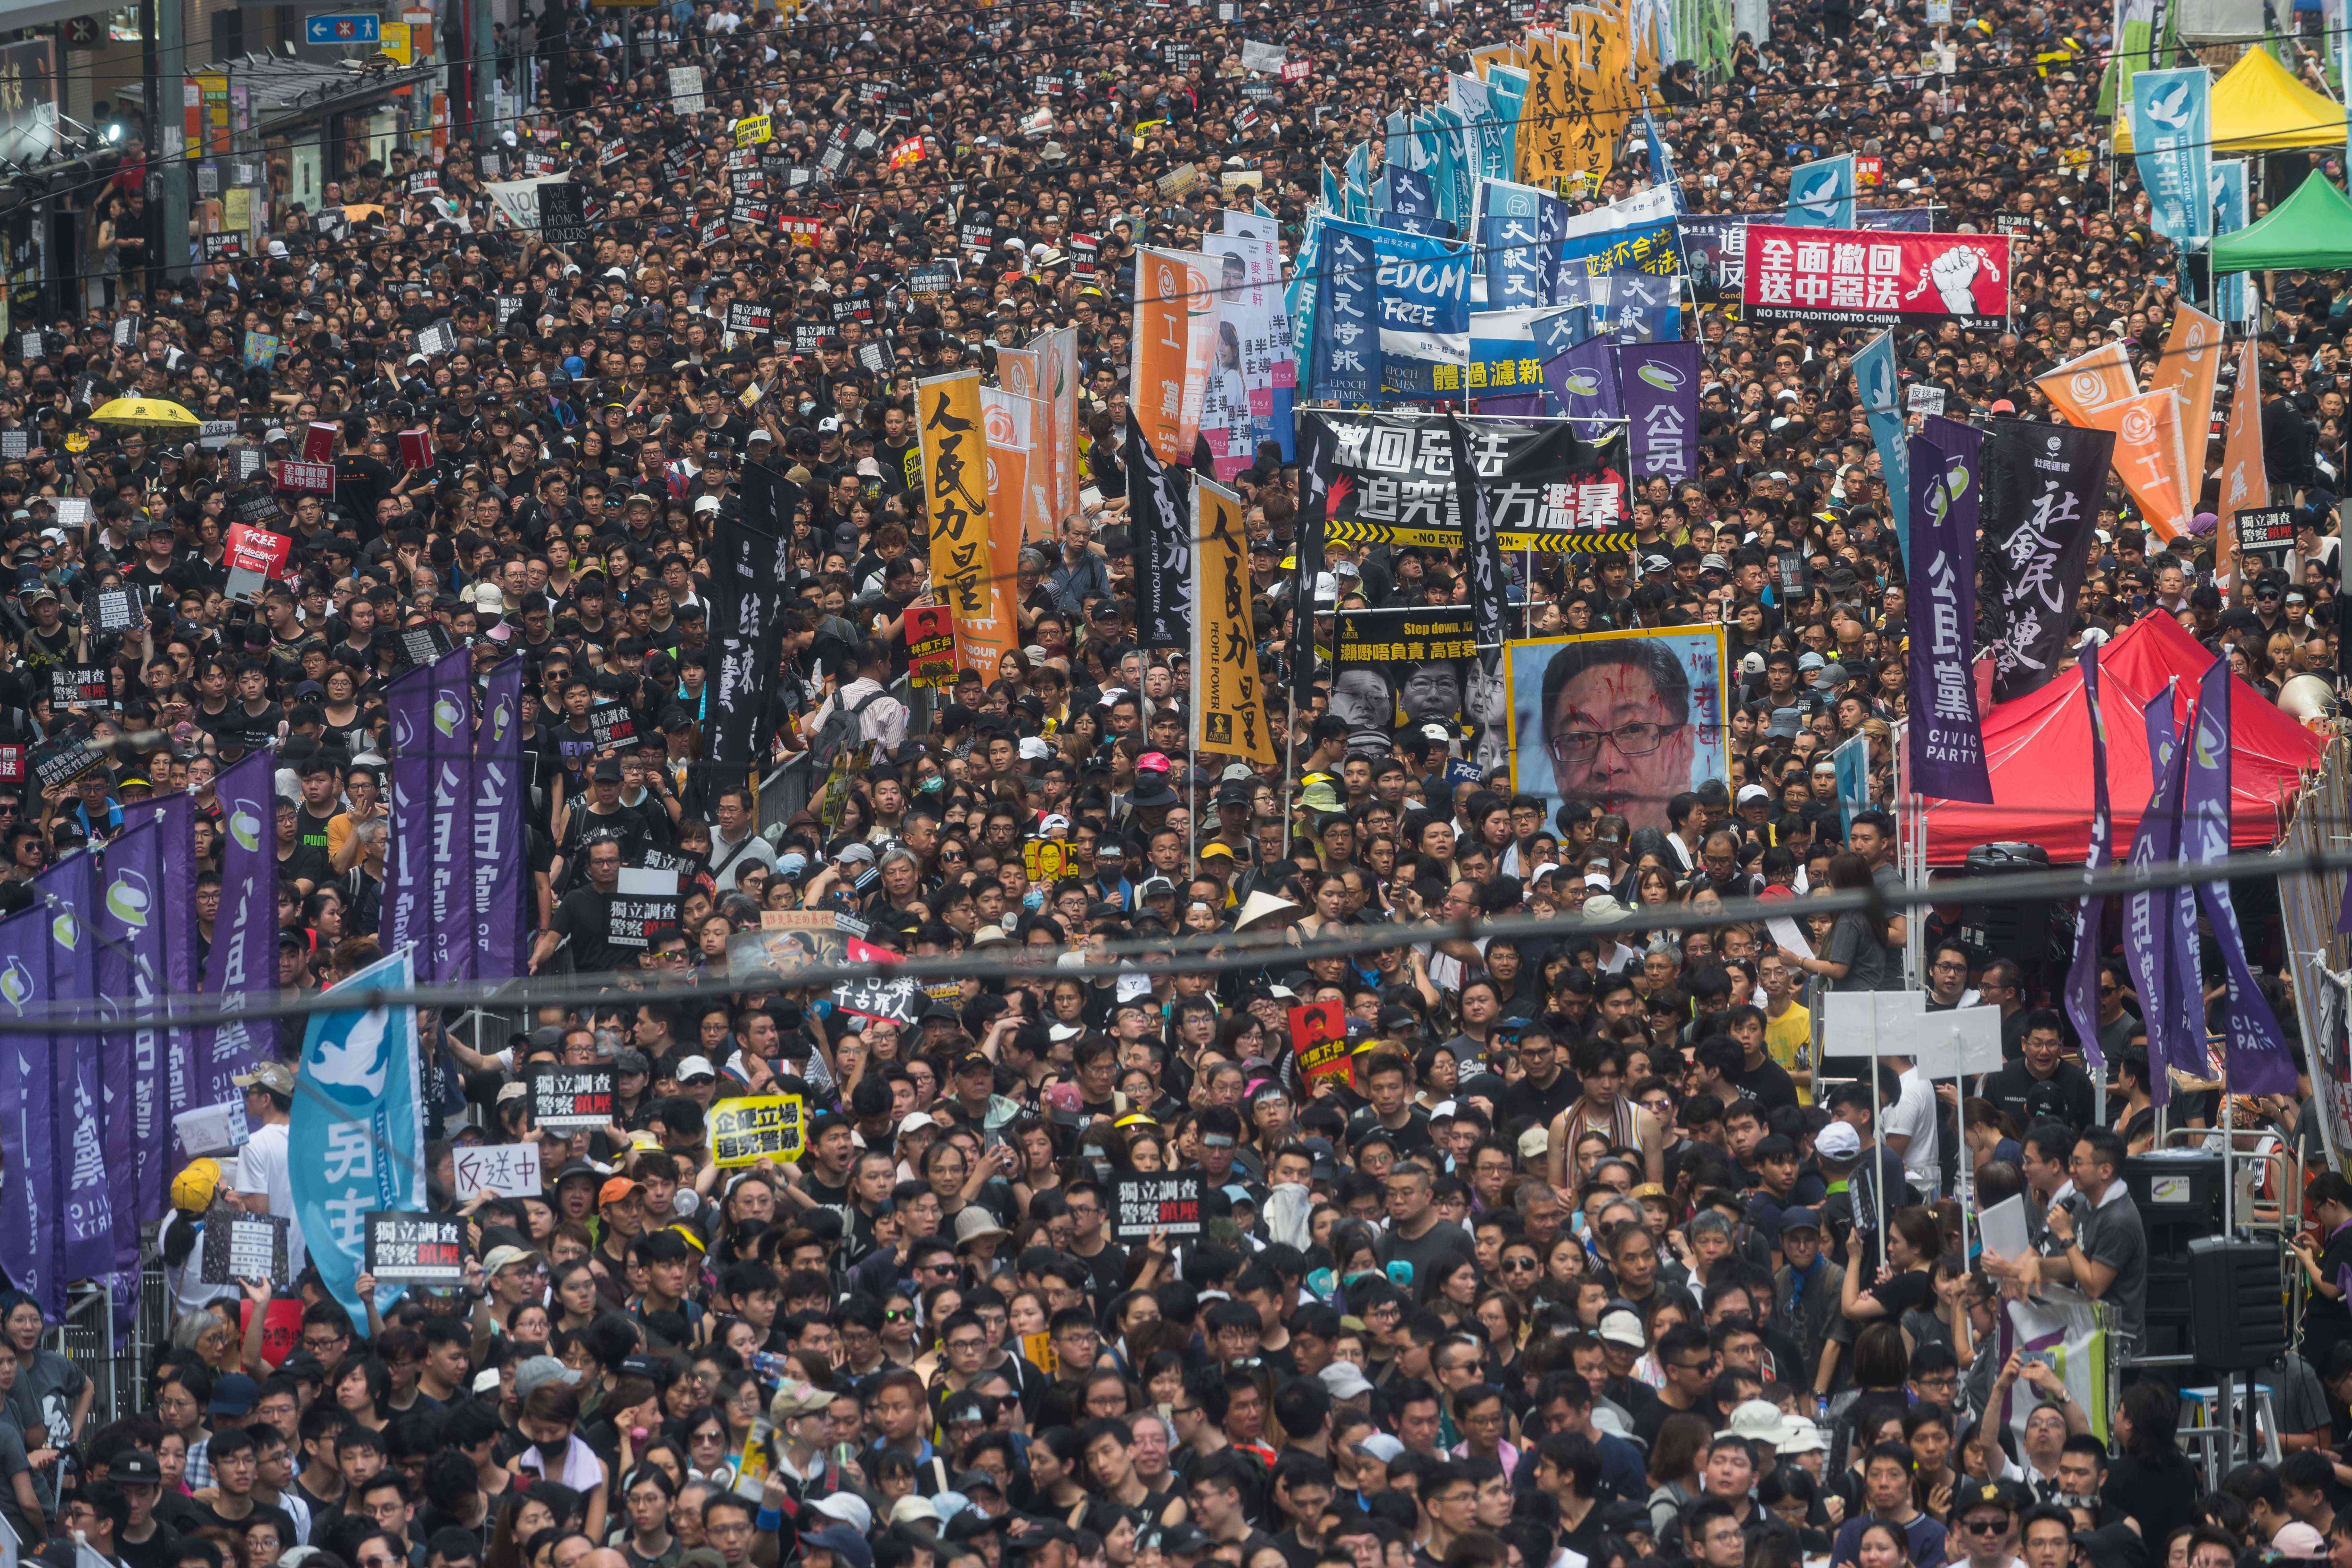 Protesters take part in a rally against extradition bill on July 1, 2019 in Hong Kong, China.